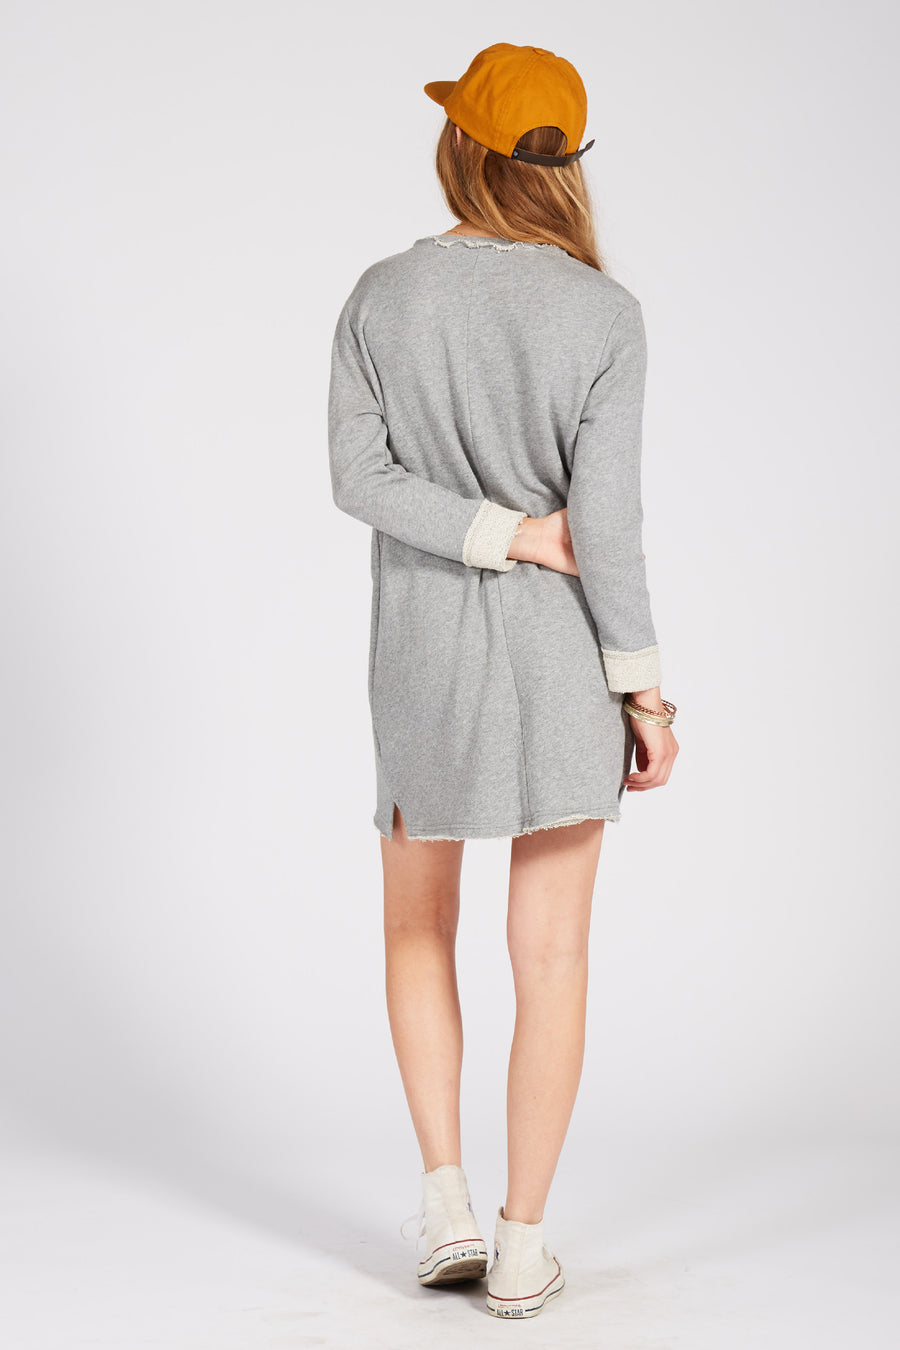 CHICAGO DRESS - HEATHER GREY - Knot Sisters